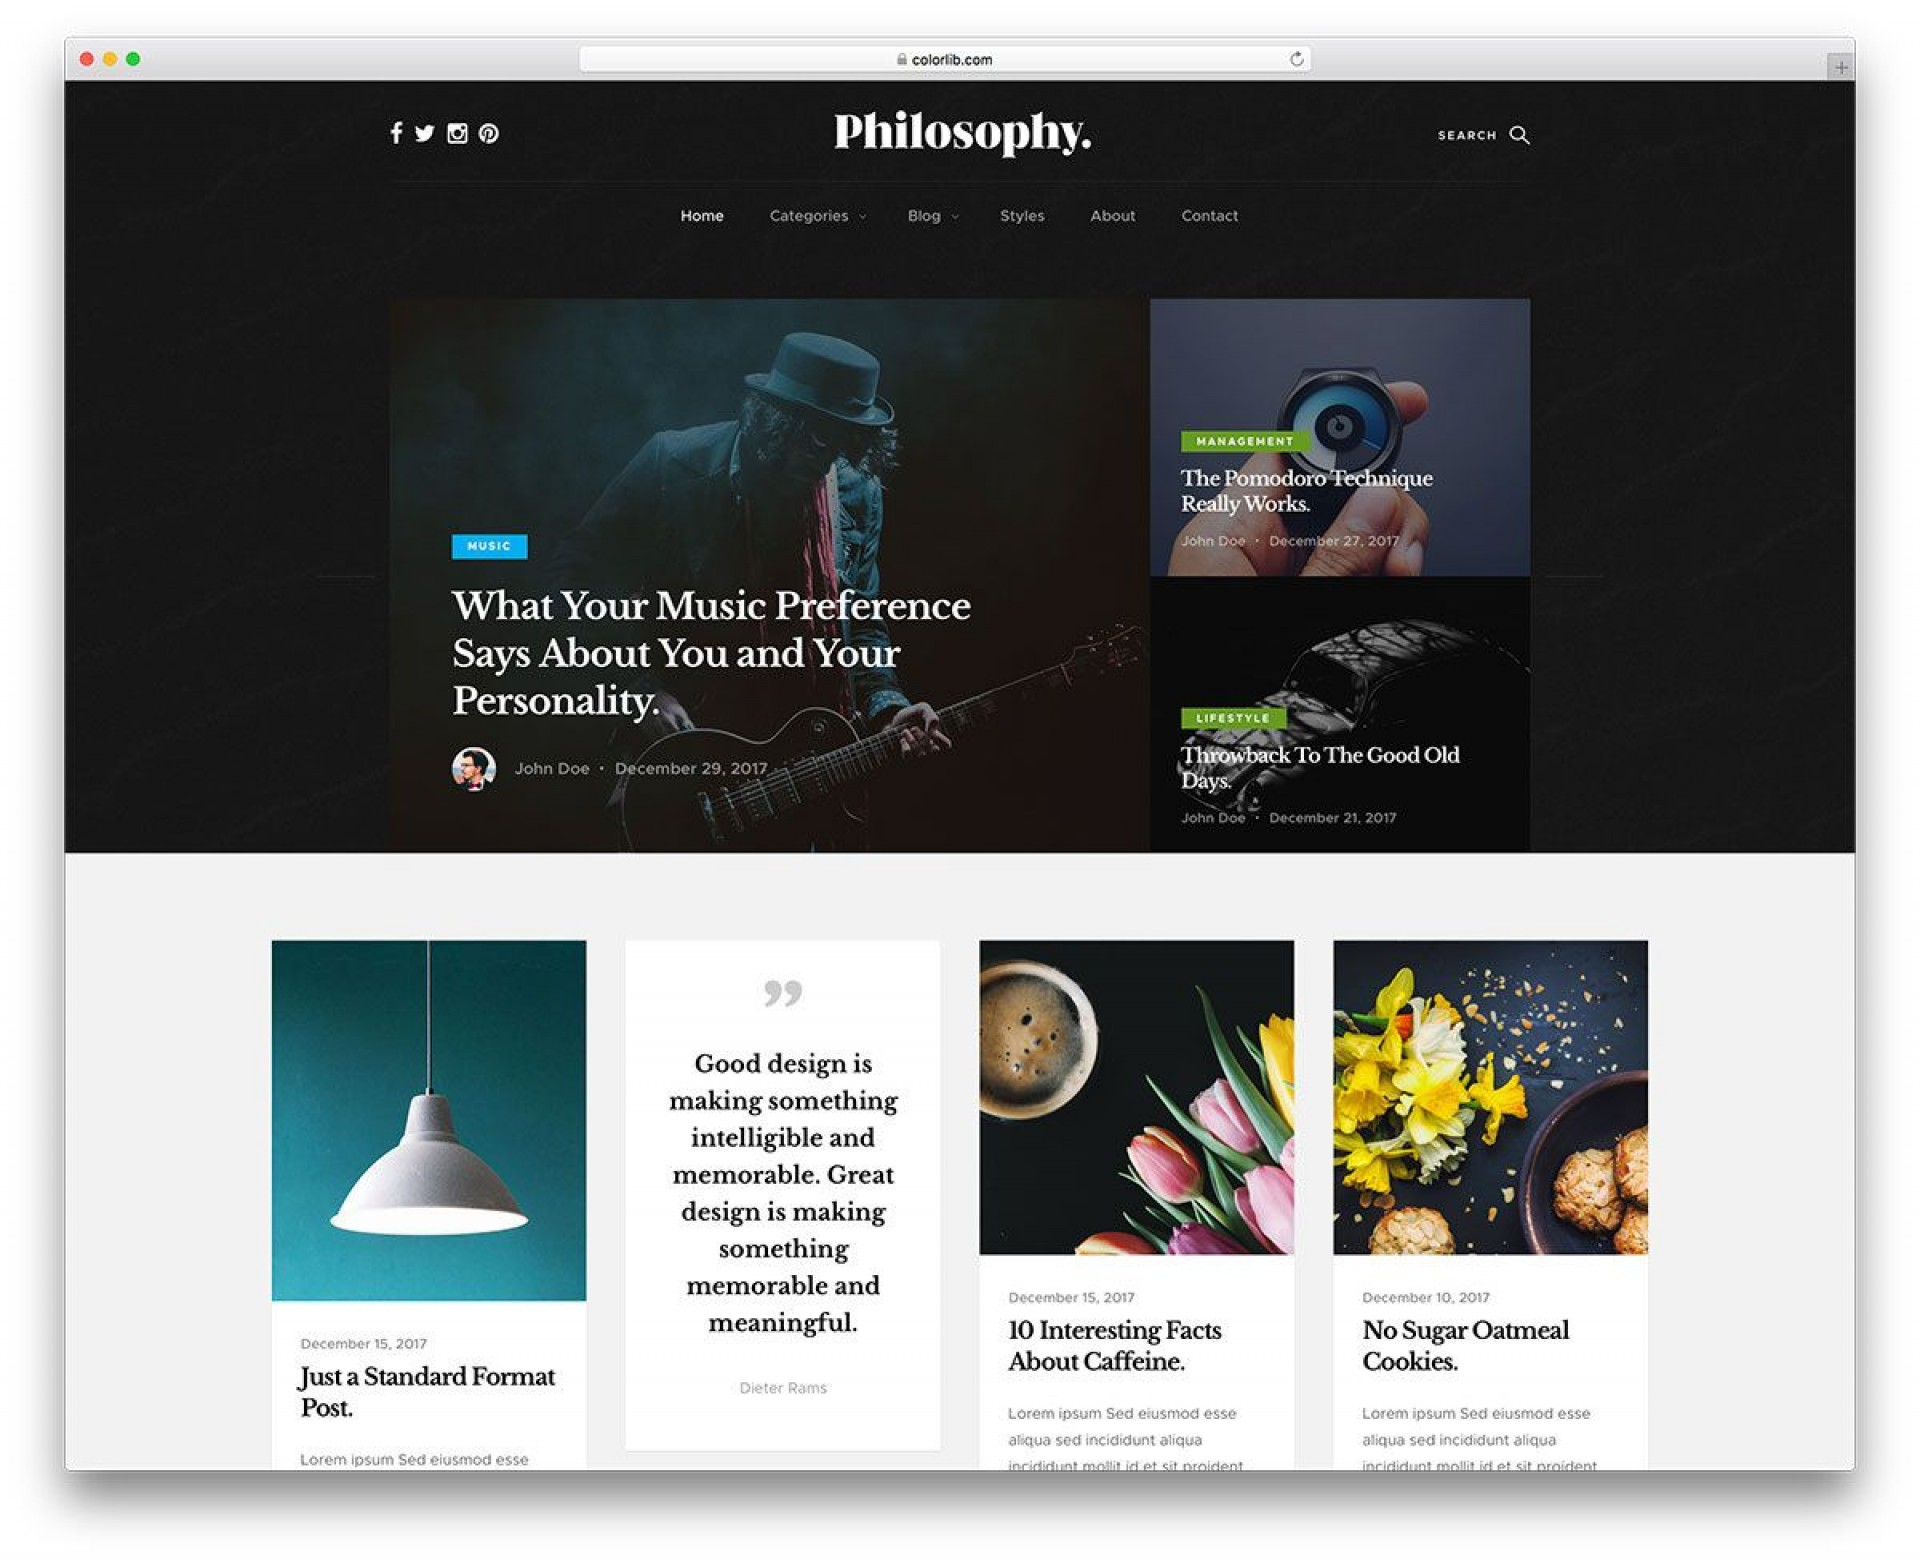 005 Outstanding Web Page Design Template Cs Image  Css1920